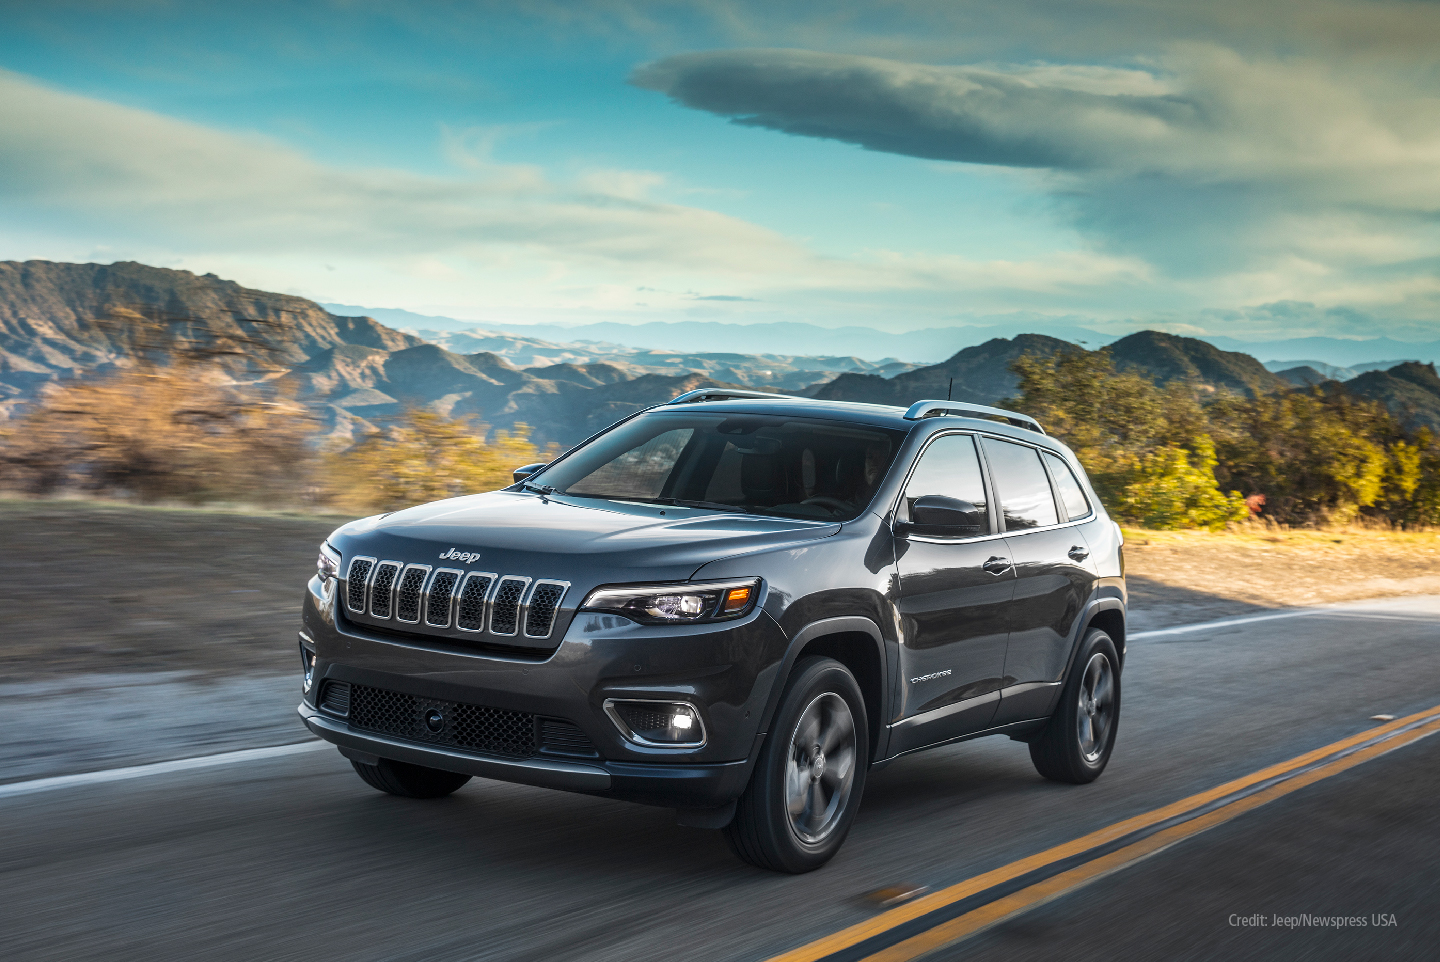 Jeep Cherokee on highway in front of mountains